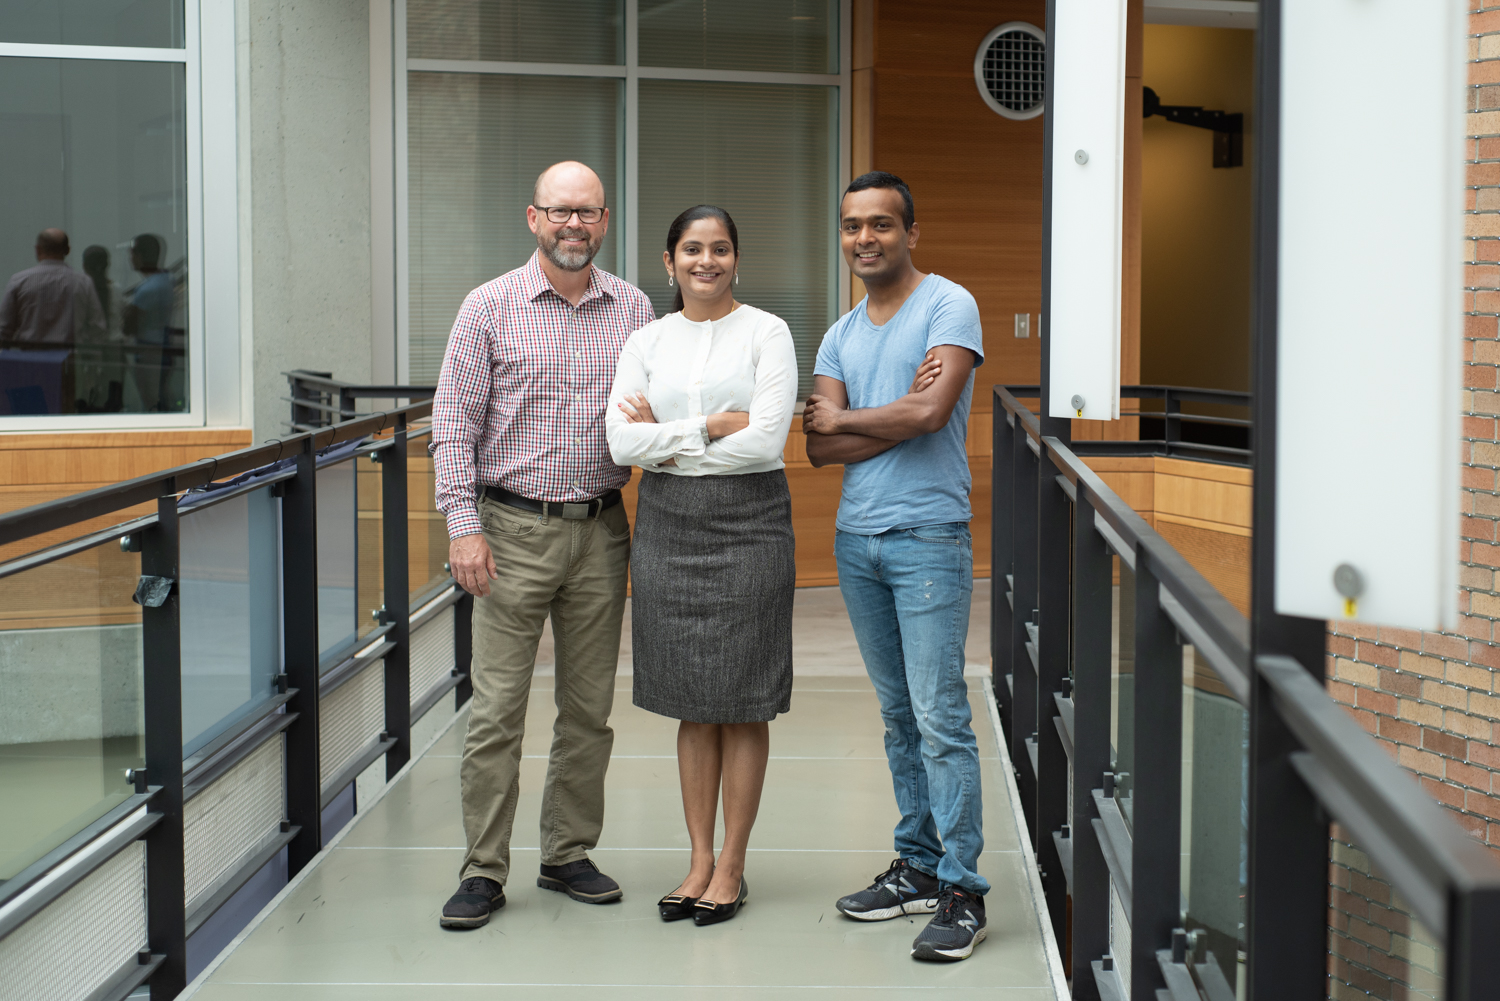 Left to right: Nate Watson, Rajalakshmi Nandakumar, and Shyam Gollakota